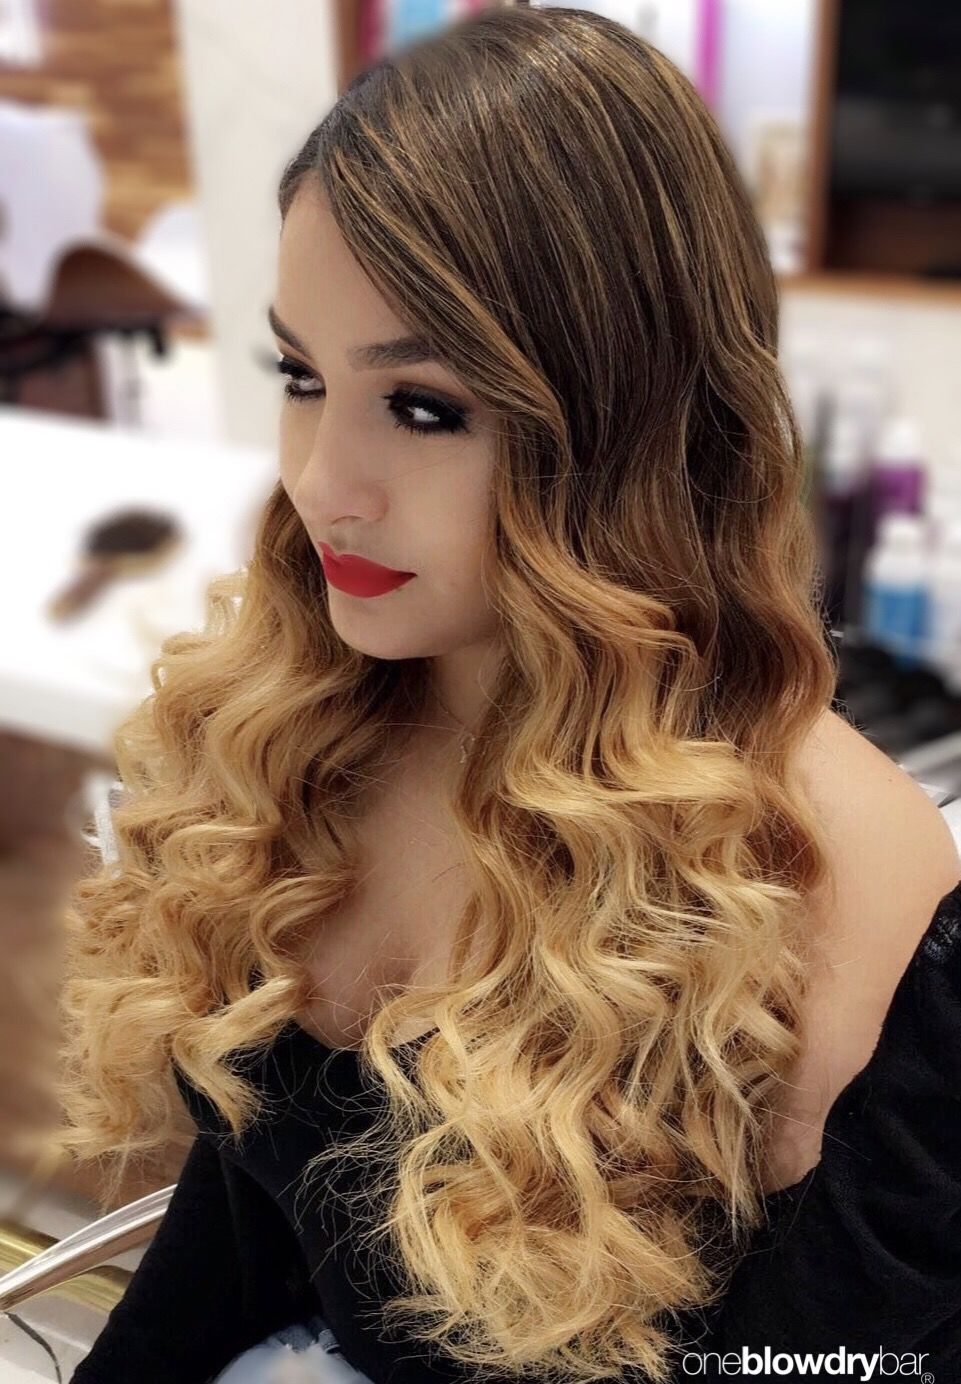 Blow Dry Bar   HAIRSTYLES   Pinterest   Blow dry bar, Dry bars and ...